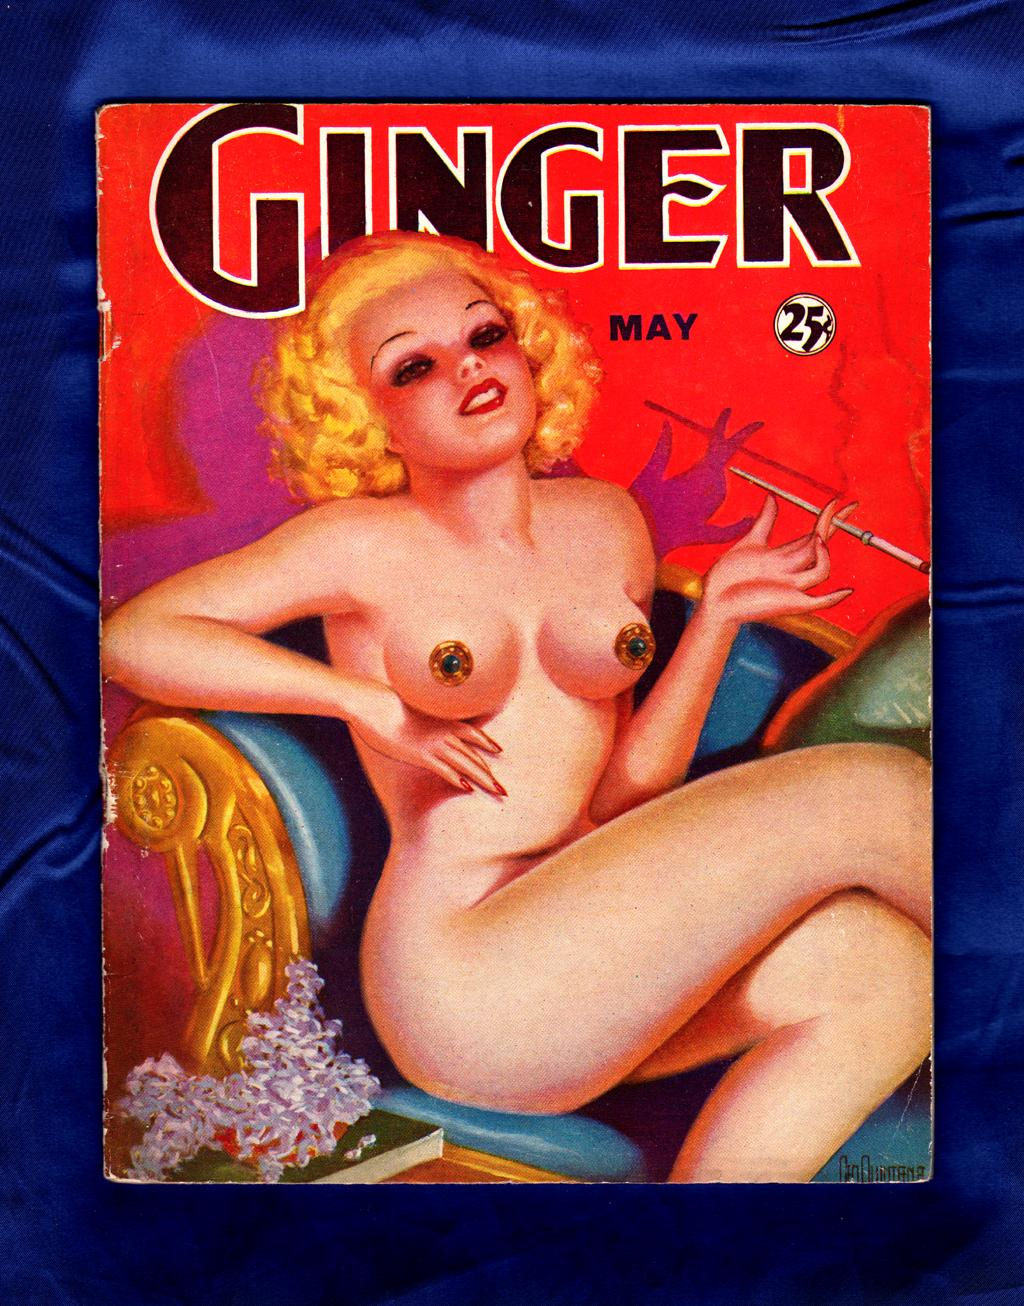 Ginger - May, 1935 Vol. 1, Number 1. Vintage American Pin-up pulp Erotica; Georges (George) Quintana Cover. Anonymous Editors